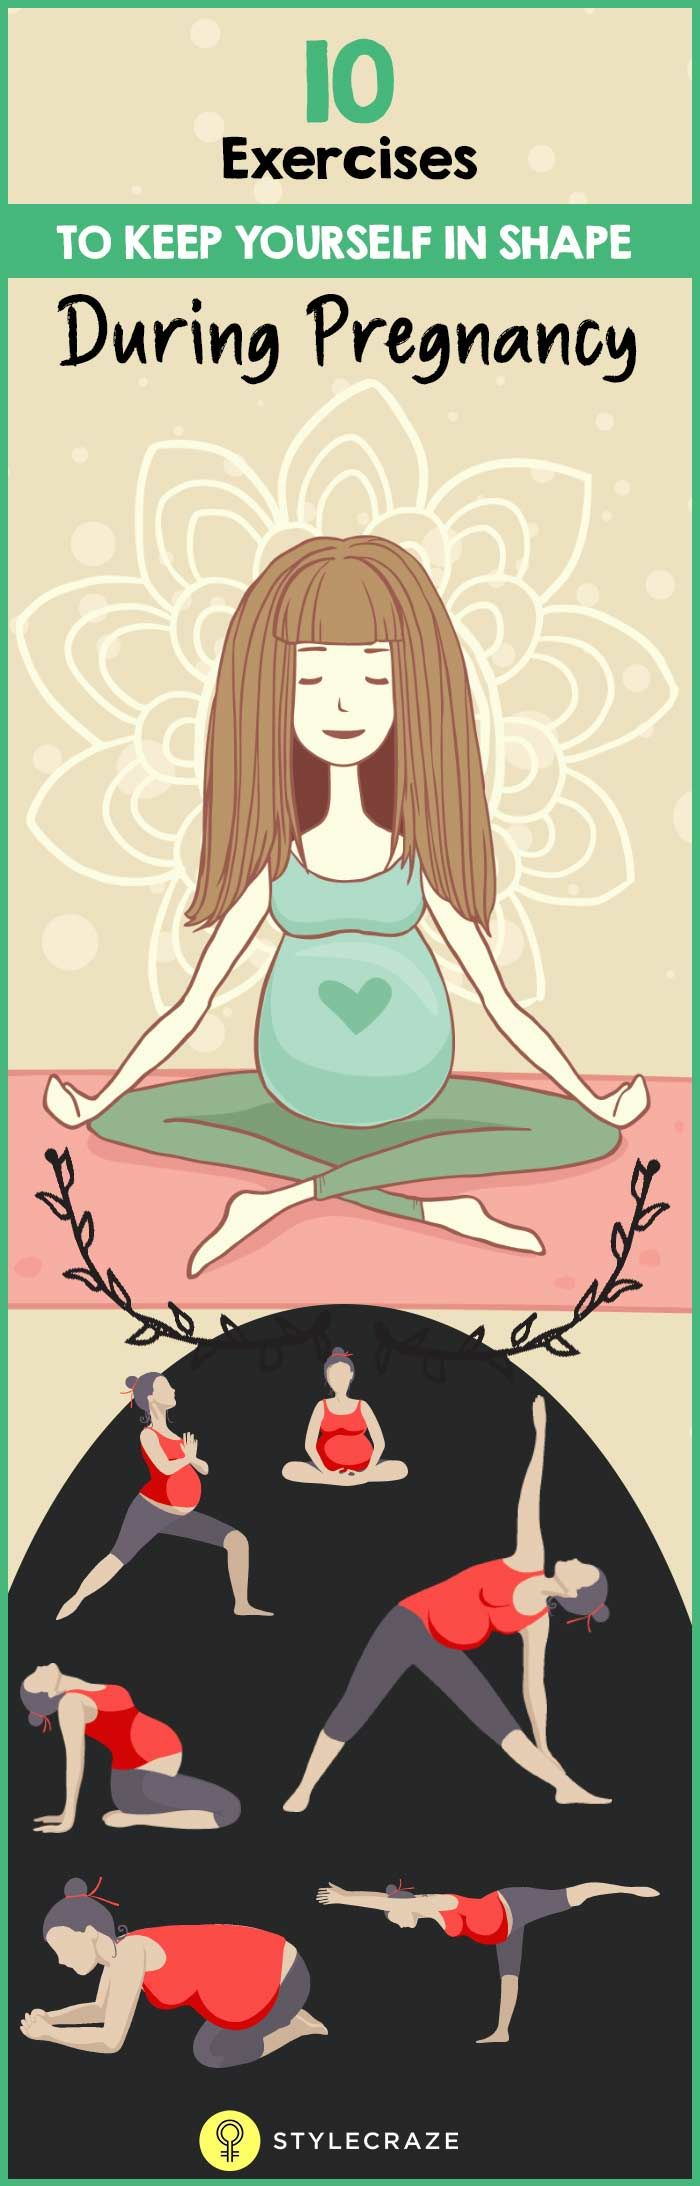 6 Simple Steps To Do Butterfly Exercise During Pregnancy 6 Simple Steps To Do Butterfly Exercise During Pregnancy new pictures